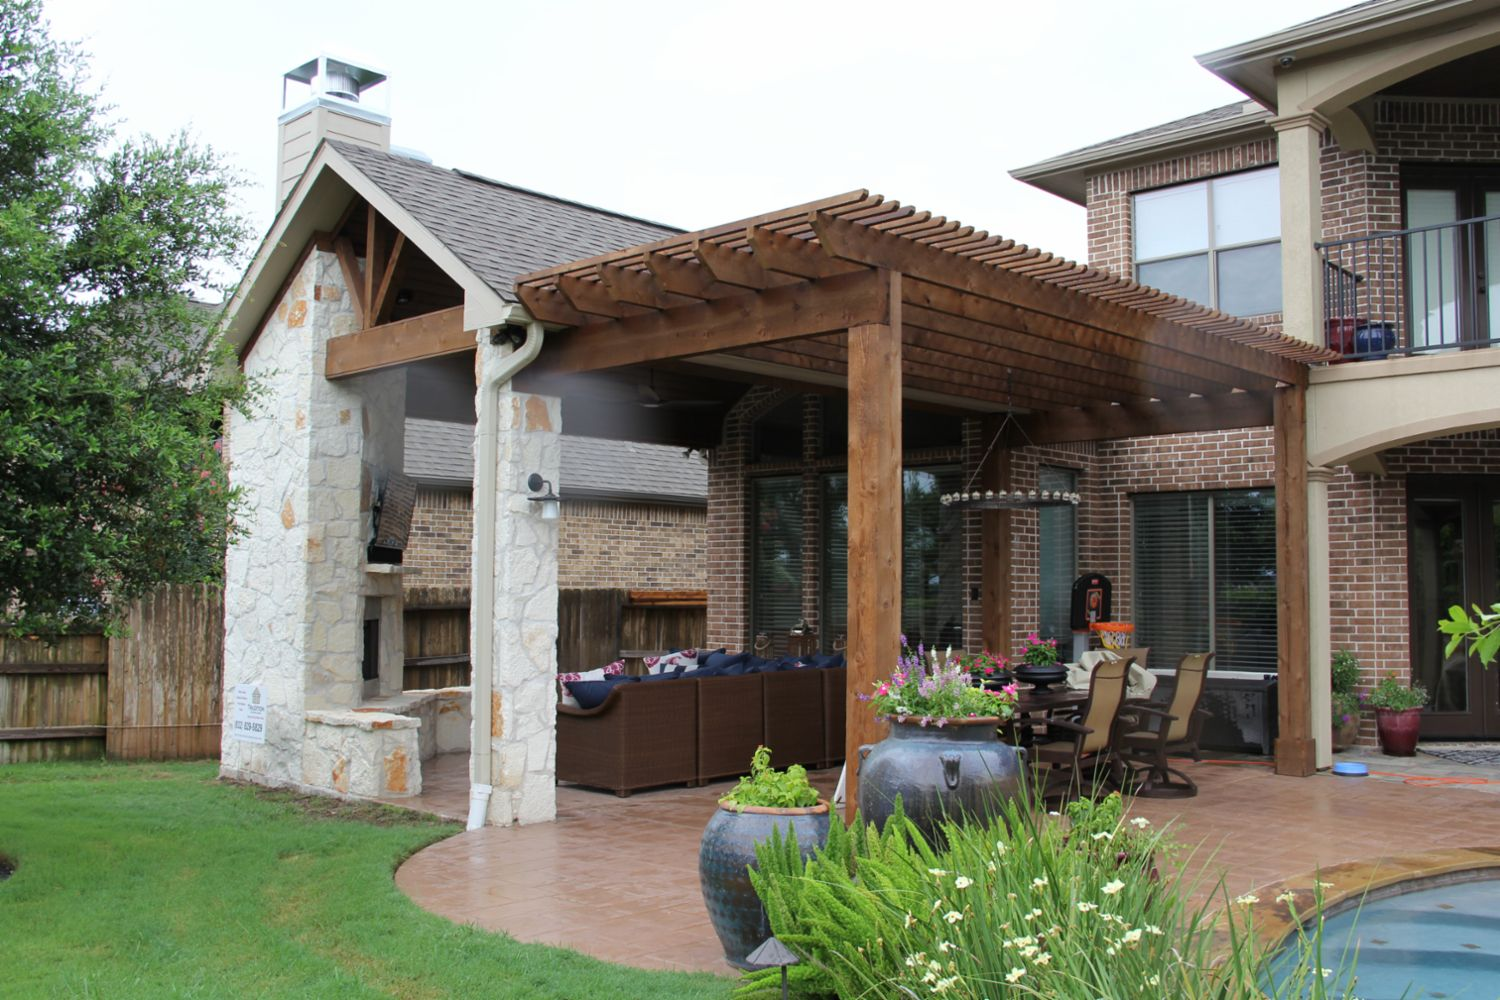 Patio Covers, Outdoor Kitchens, Fire Features in Katy, TX ... on Covered Outdoor Kitchen With Fireplace id=98164